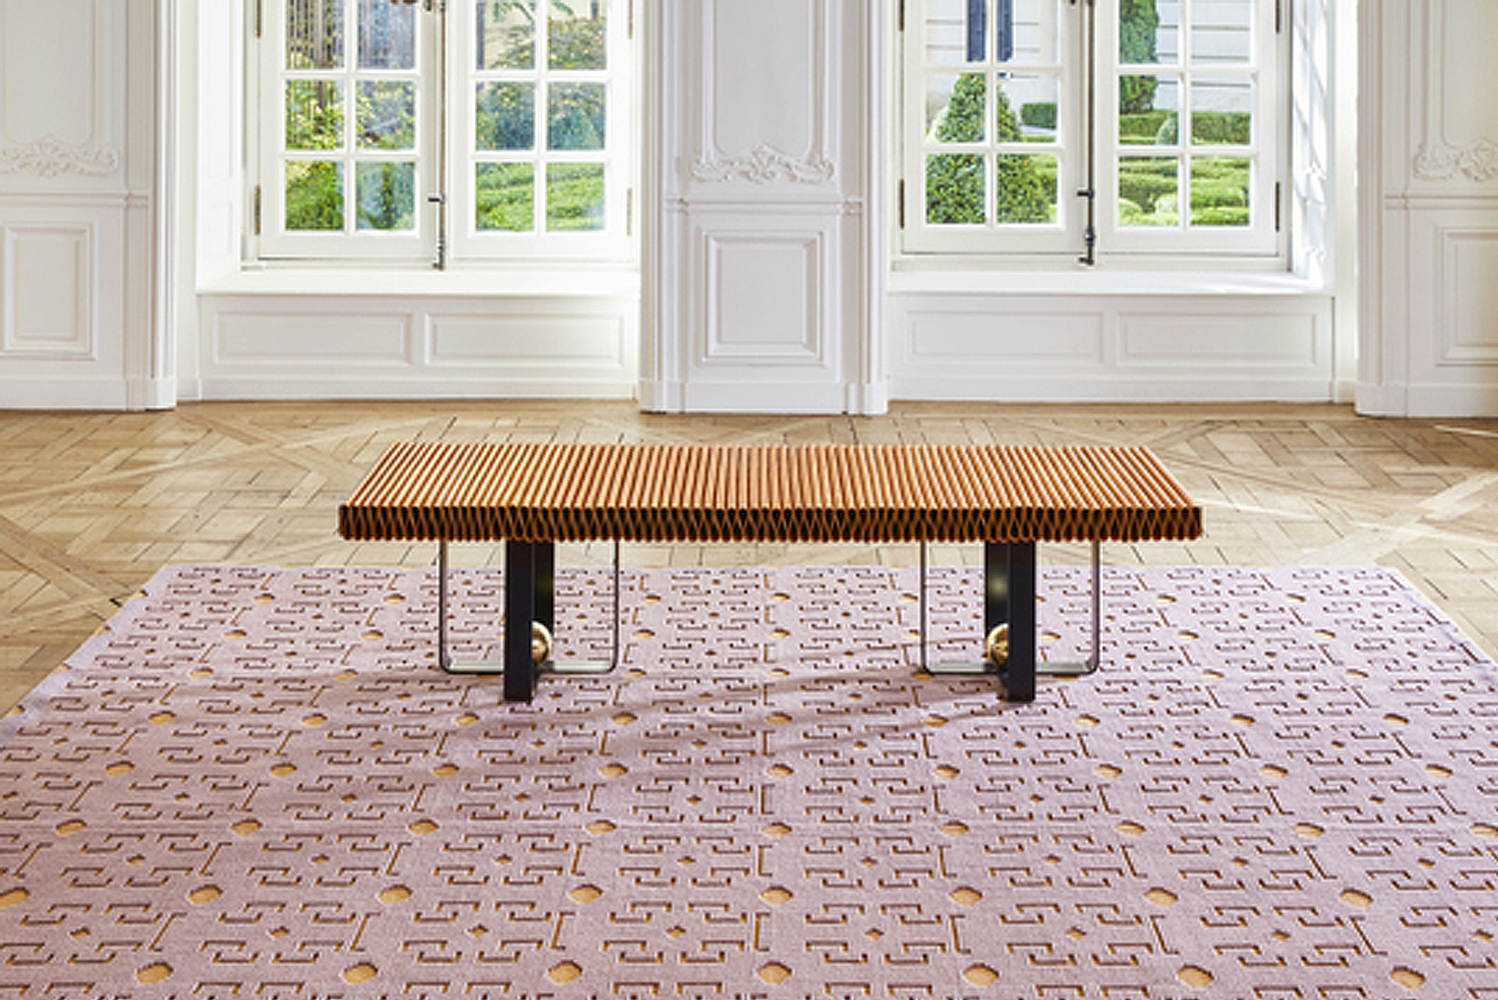 These rugs are made to order in wool, cotton and jute, and are hand woven in narrow panels on 19th Century Jacquard looms before the panels are sewn together by hand.